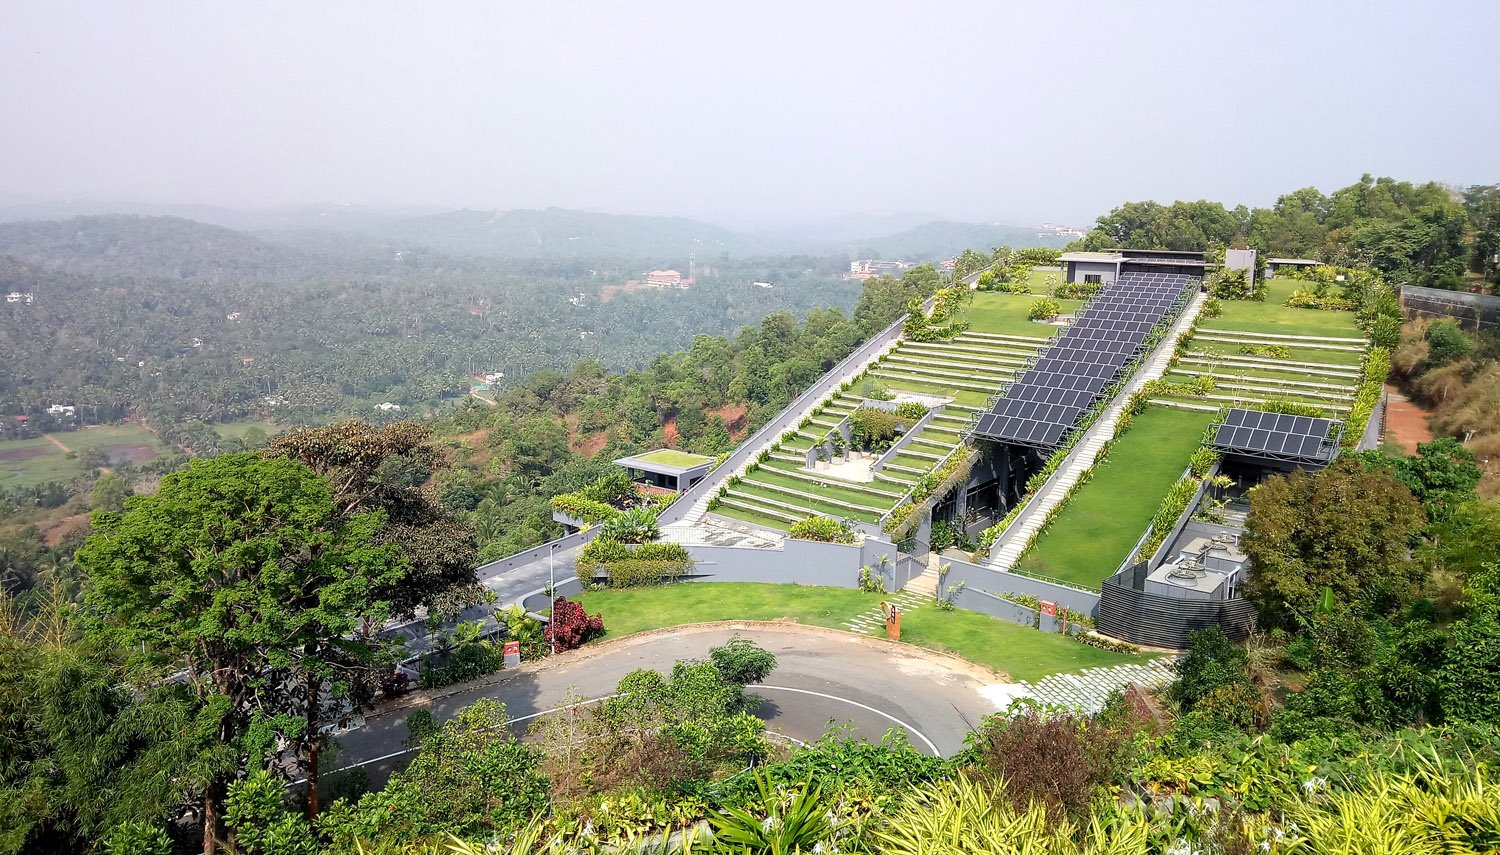 The Green Roof slopes down to the ground on the south. Ar. Sujith. G.S